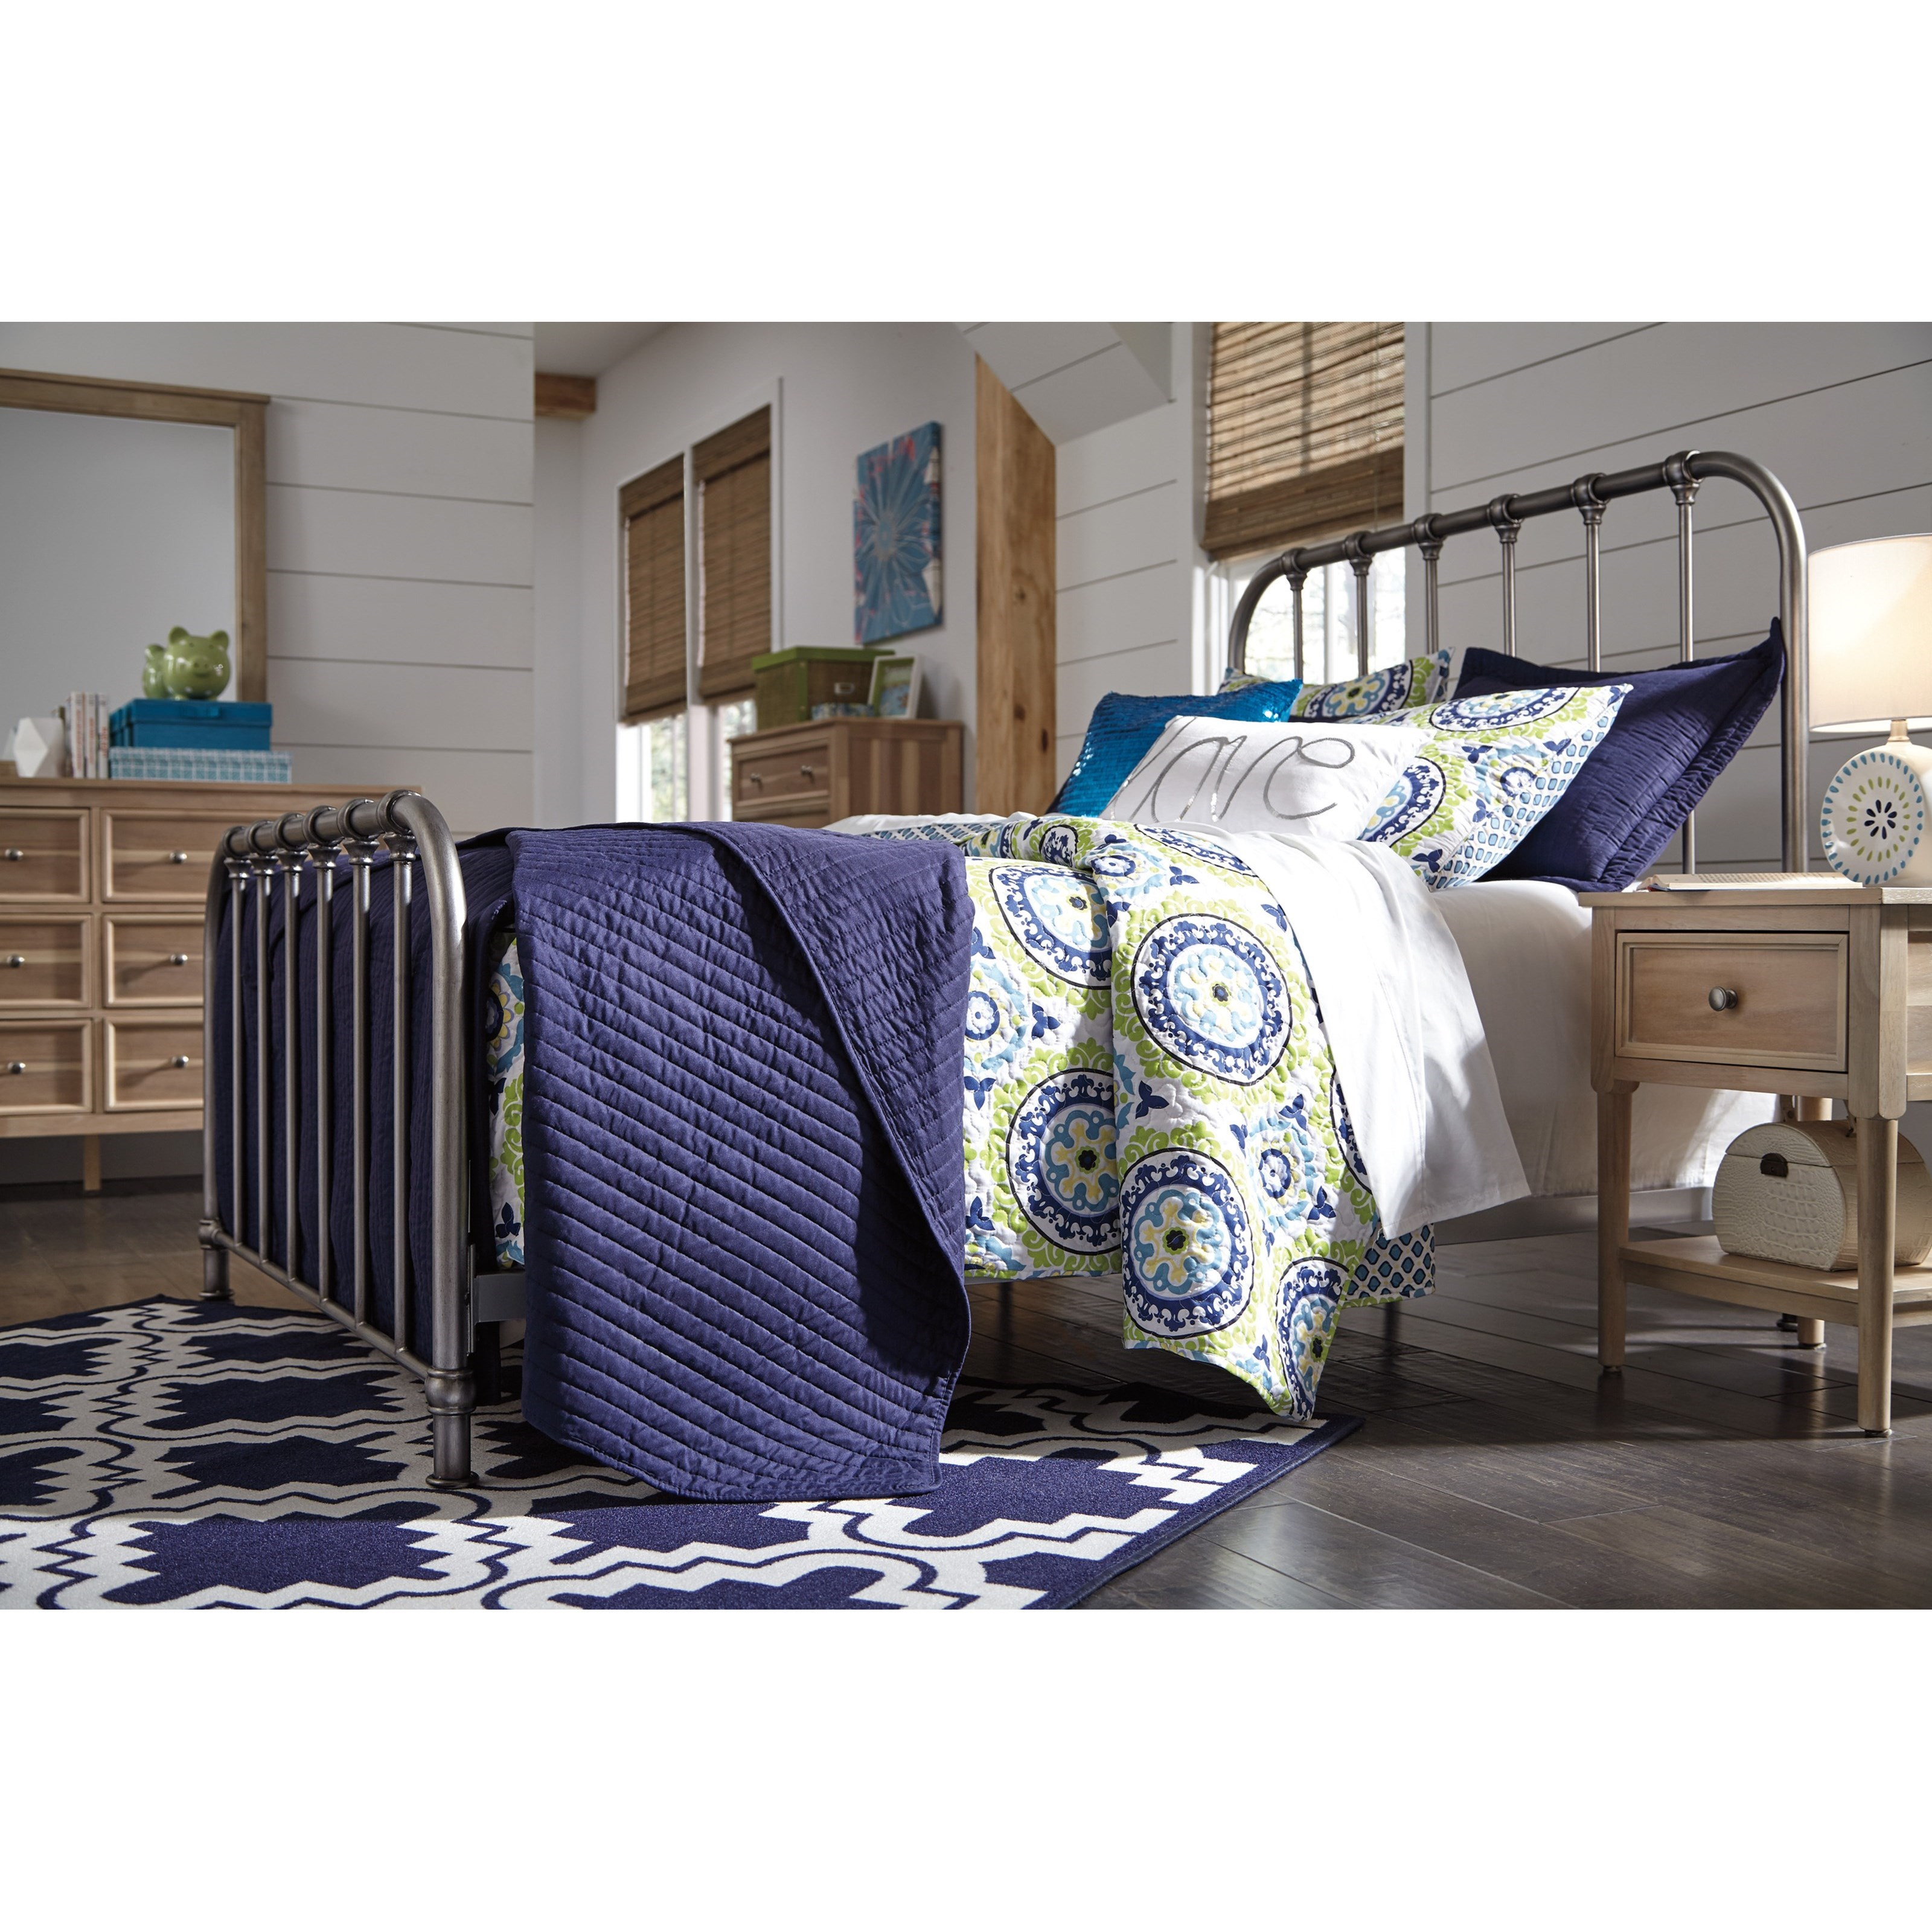 Ashley Signature Design Nashburg B280 581 Queen Metal Bed In Aged Pewter Finish Dunk Bright